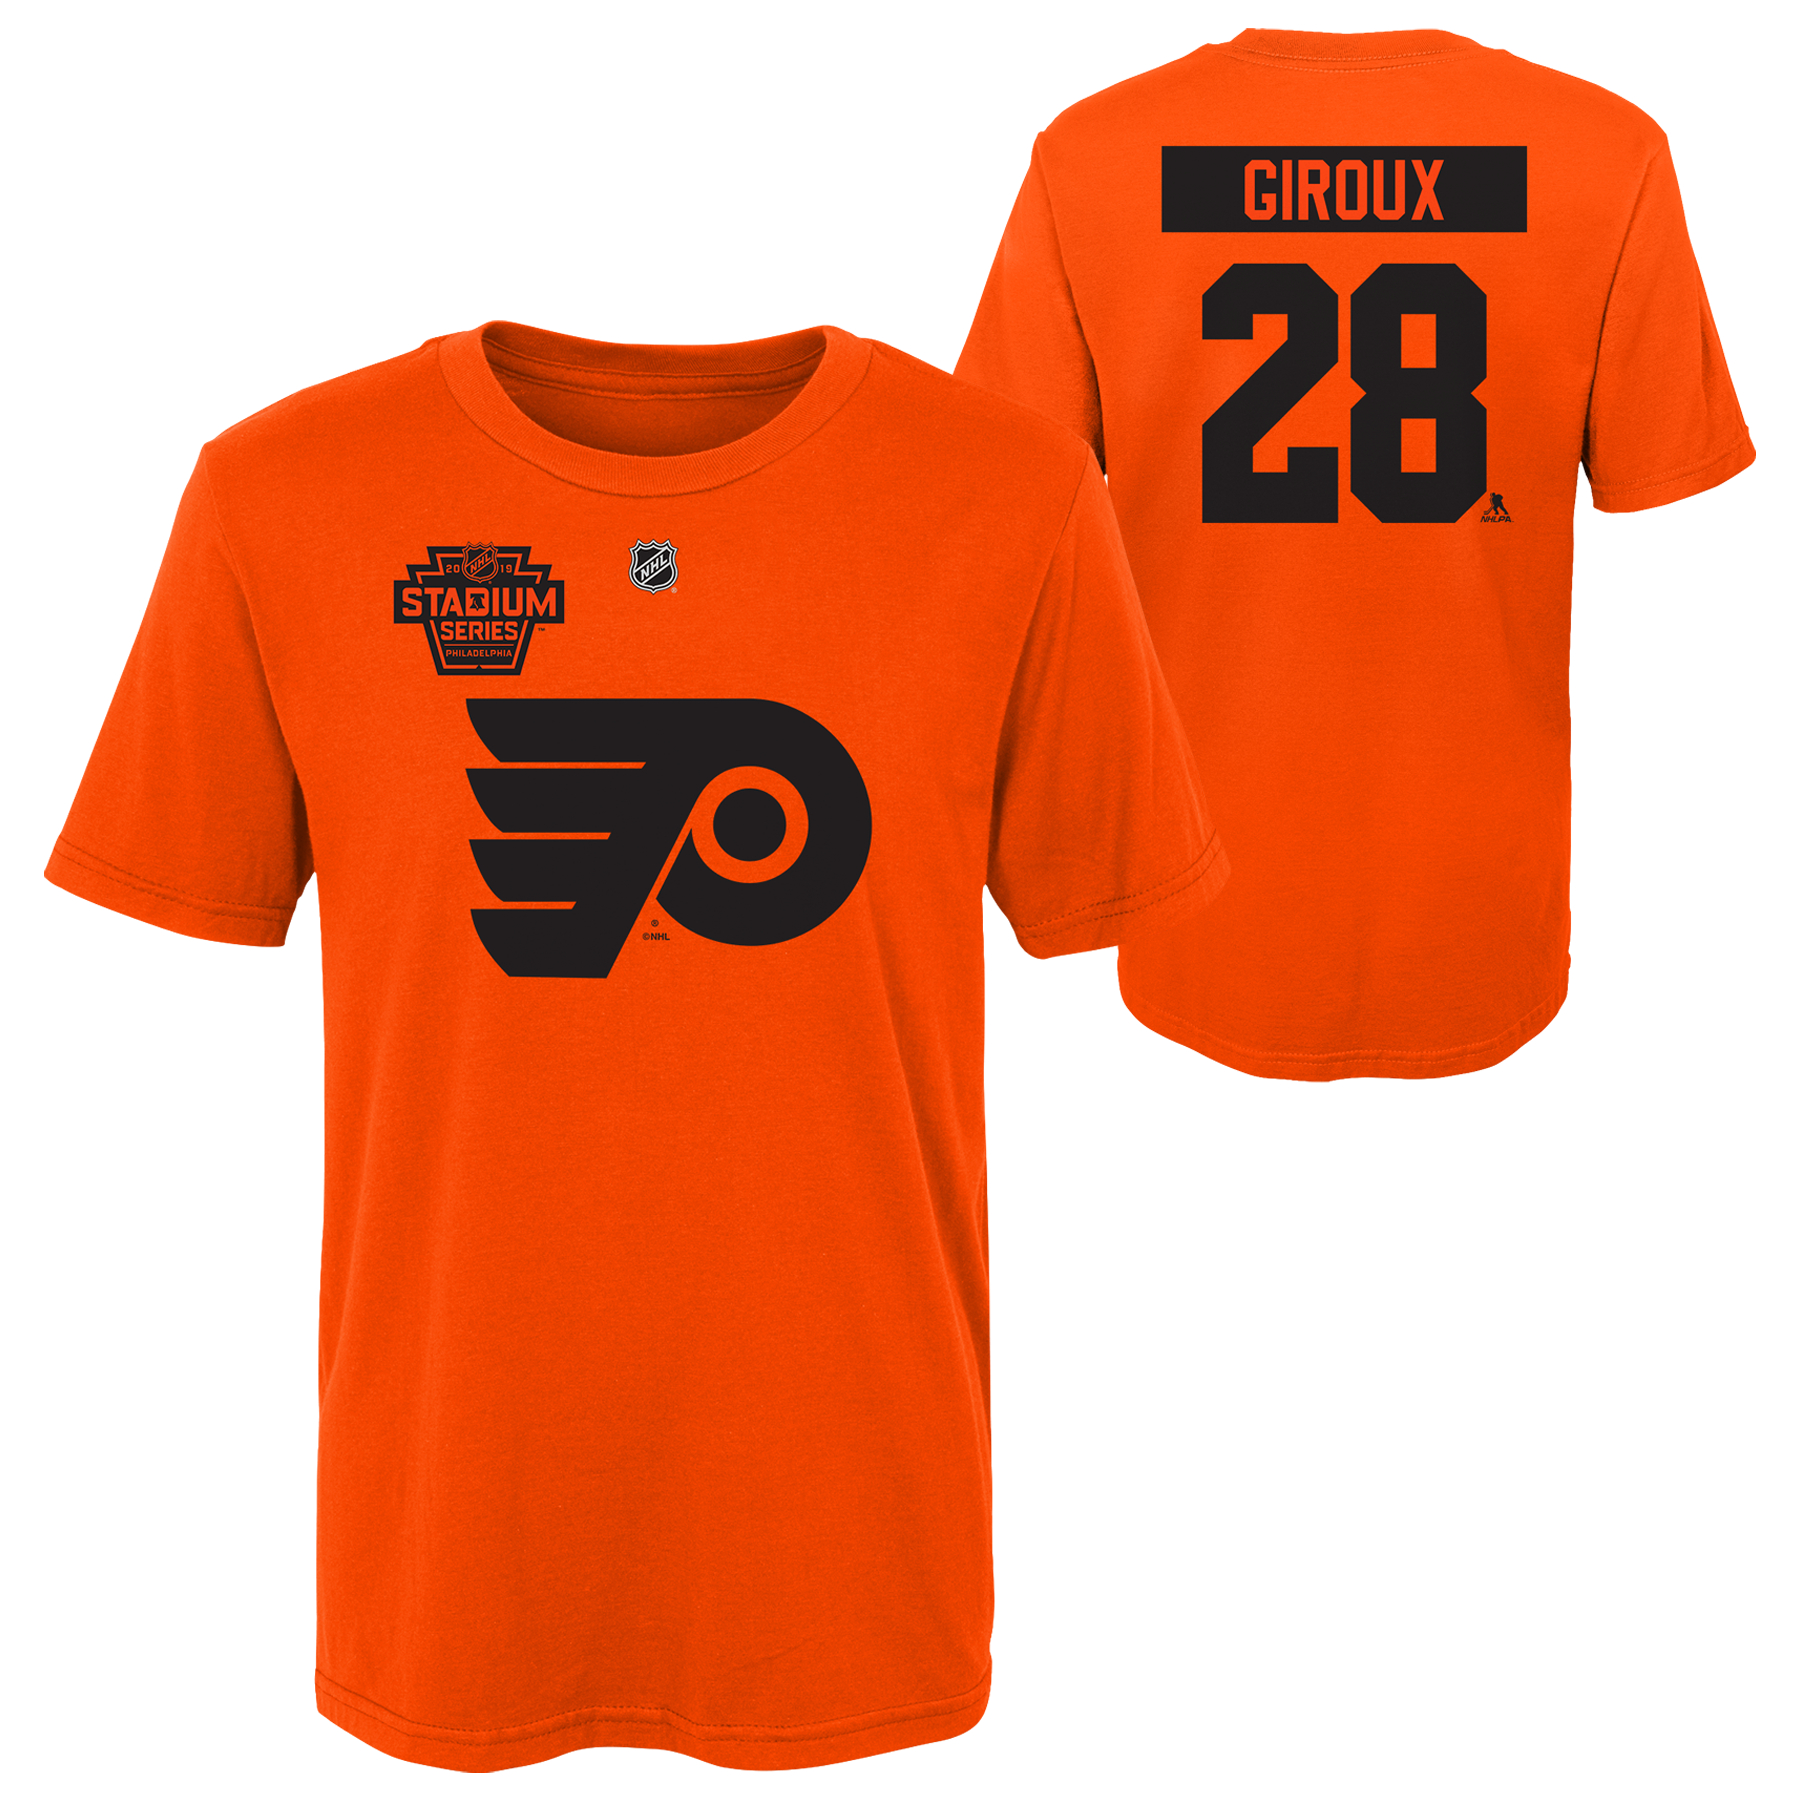 Philadelphia Flyers Youth 2019 Stadium Series Giroux Player Tee by  Outerstuff d601db92c